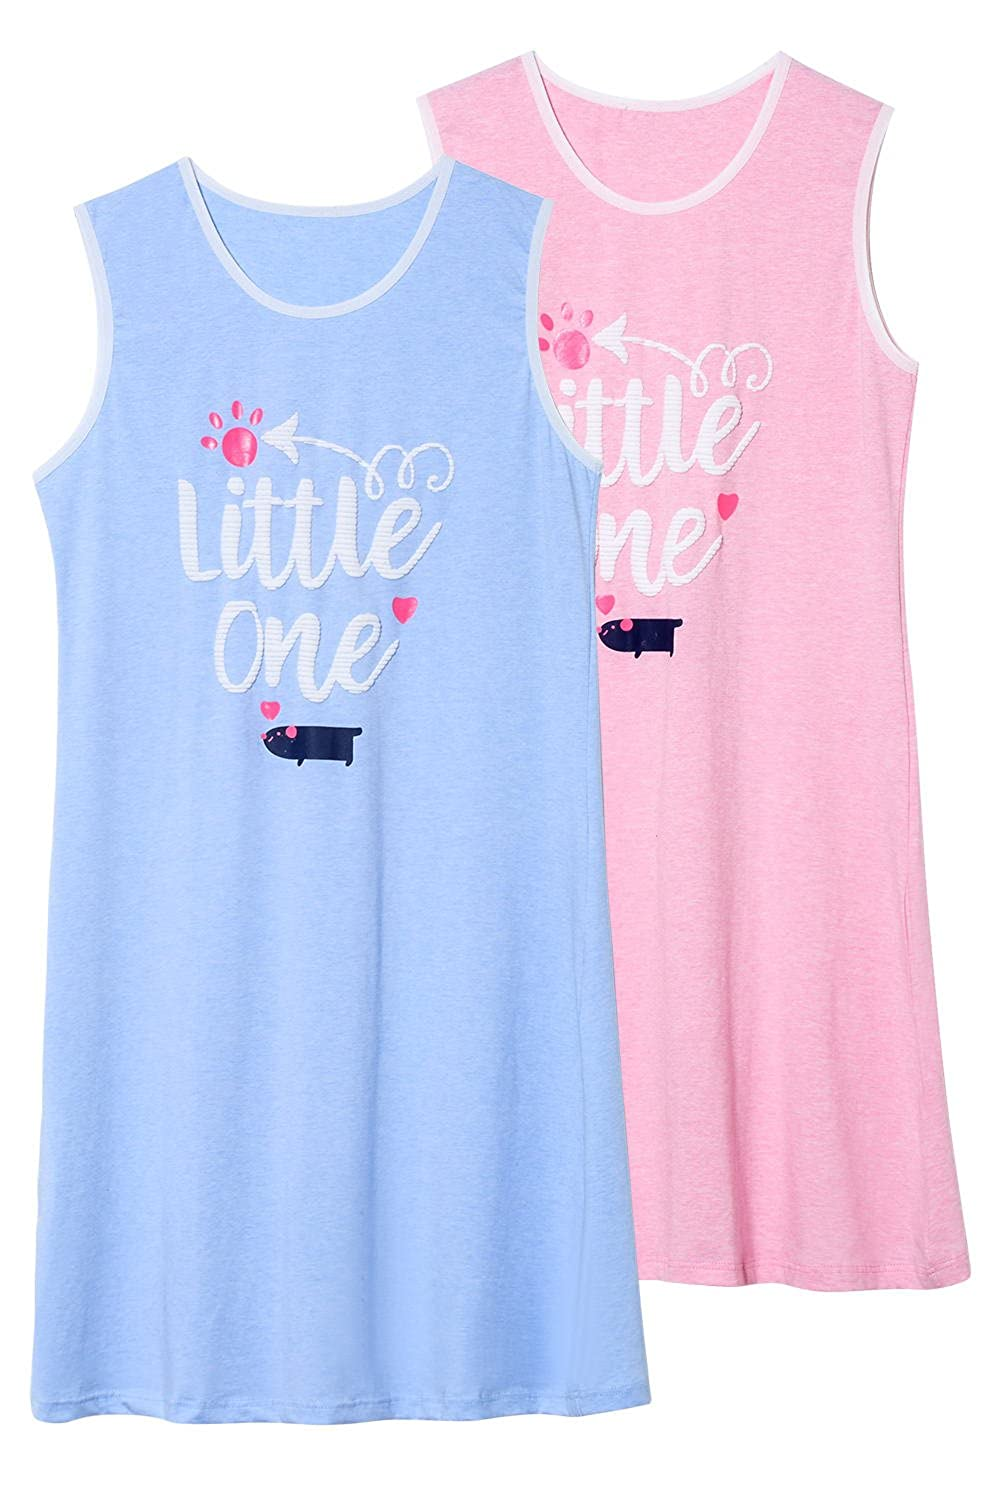 Jashe Big Girls 95% Cotton Blue & Pink Nightgowns 2Pack Super Soft Cute Kids Pajama Sleeveless Clothes FA-EBS